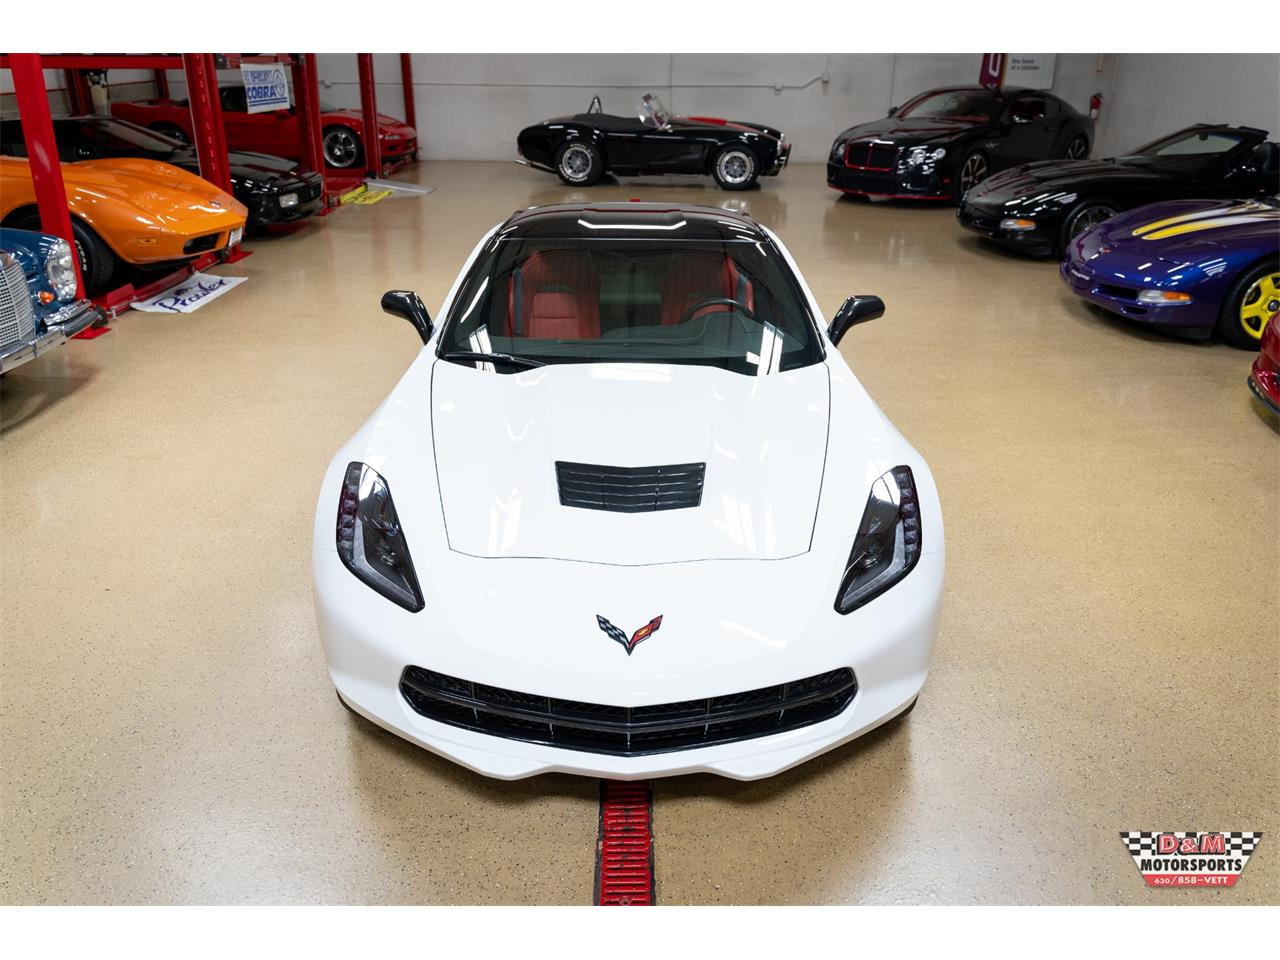 Large Picture of 2016 Corvette - $44,995.00 Offered by D & M Motorsports - R2HE